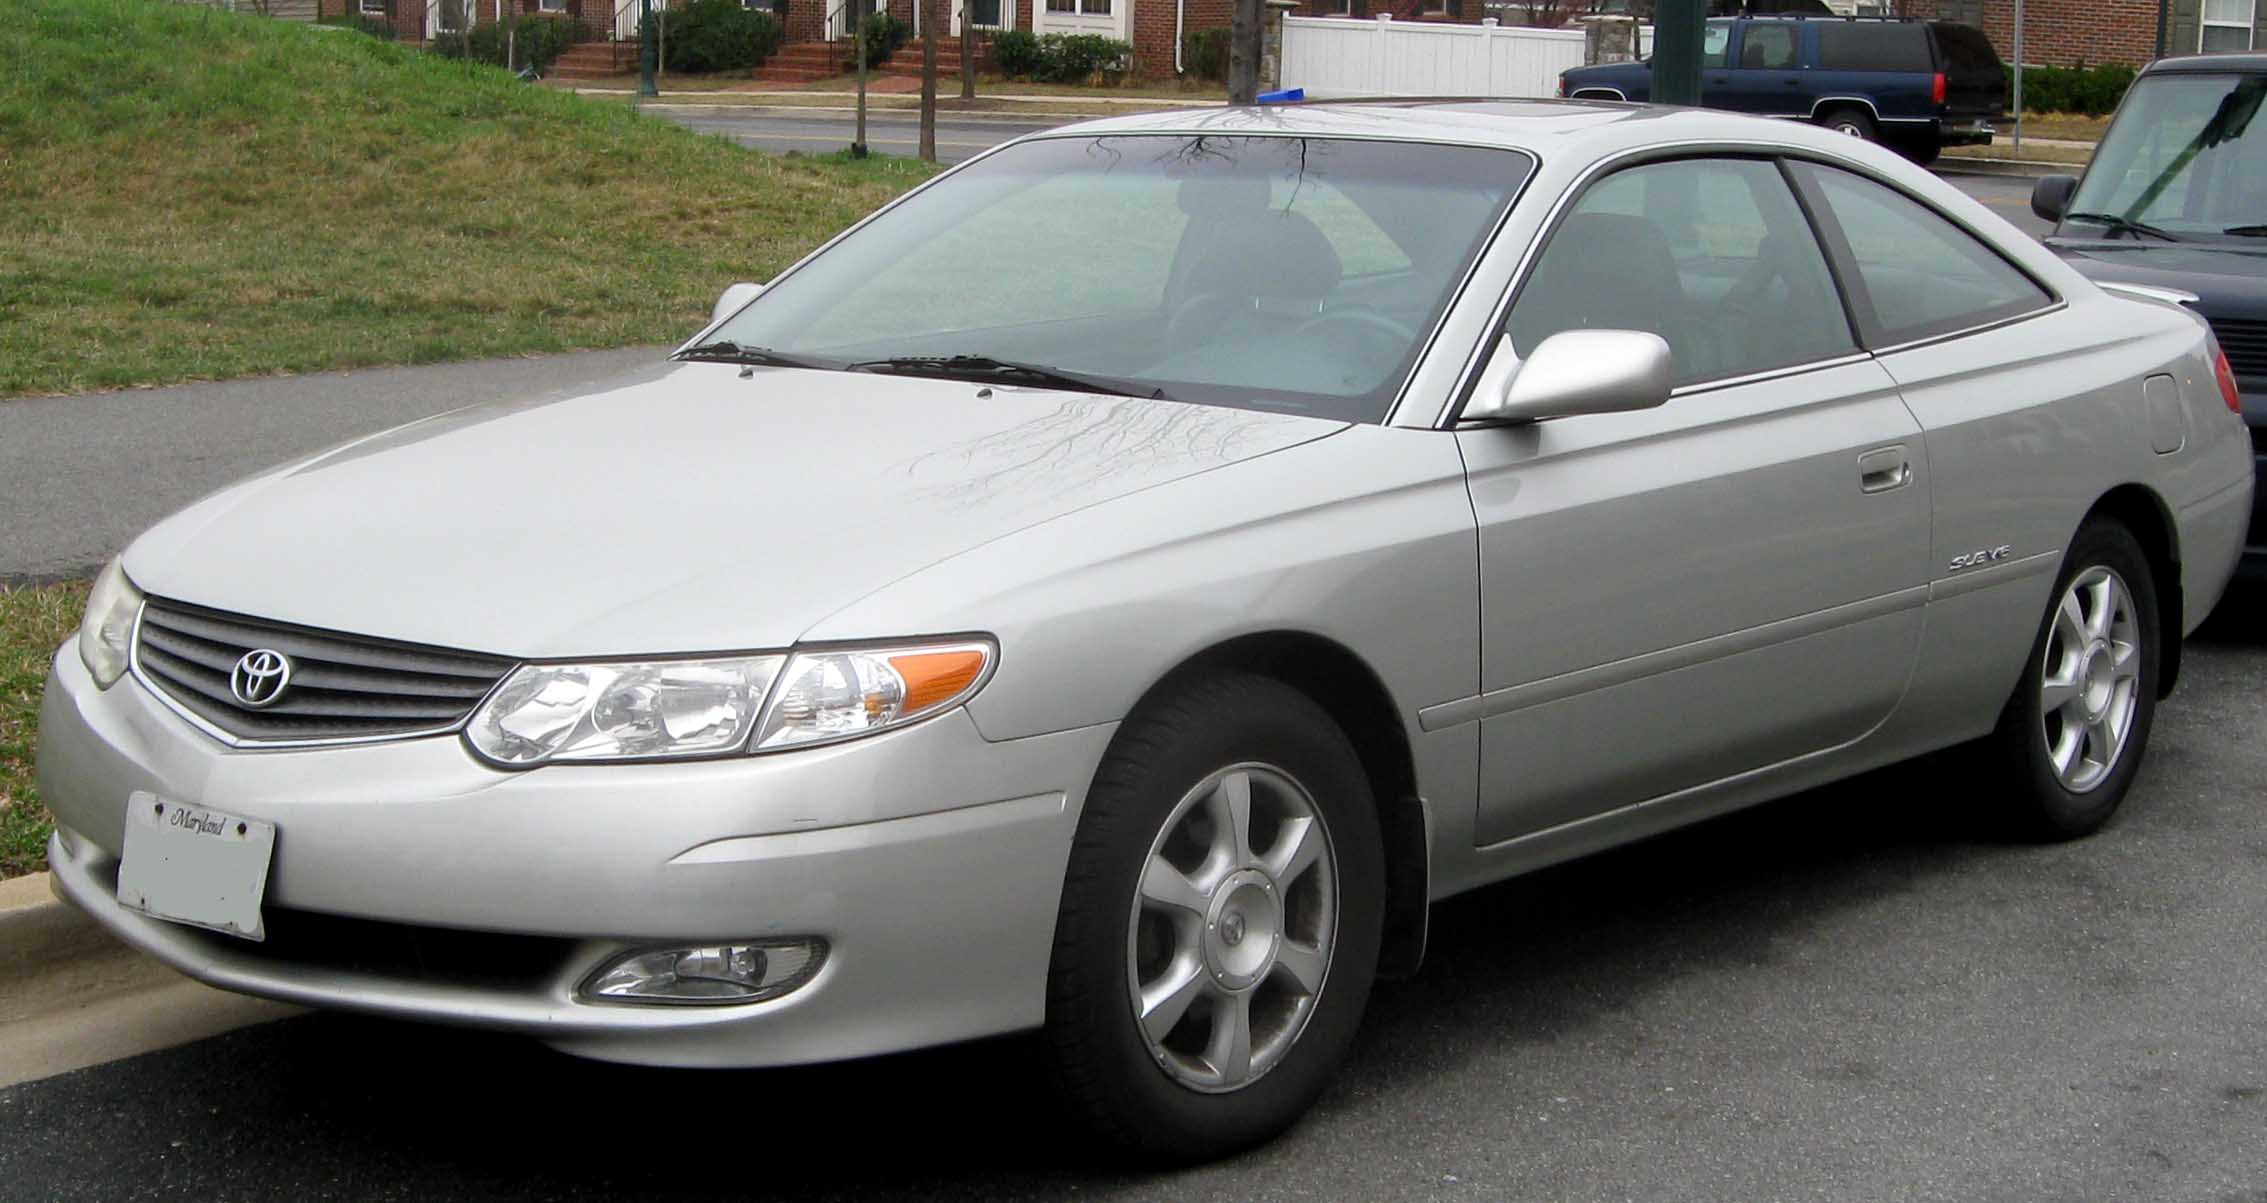 Toyota Solara For Sale By Owner 2002 2003 toyota solara sle coupe jpg toyota solara for sale by owner ...